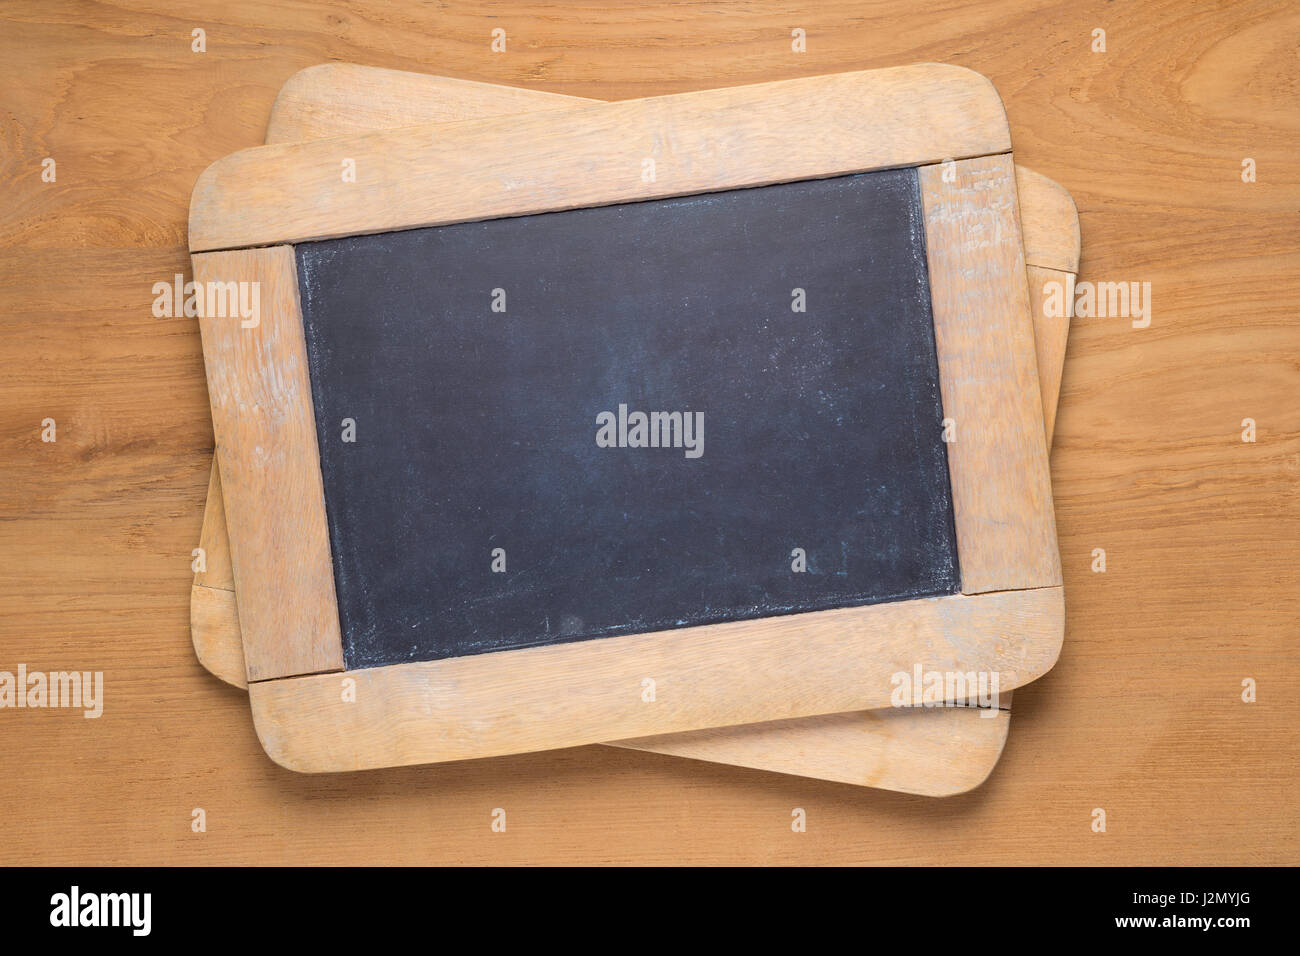 Small chalk blackboards on wooden desk, empty with room for copyspace text - Stock Image